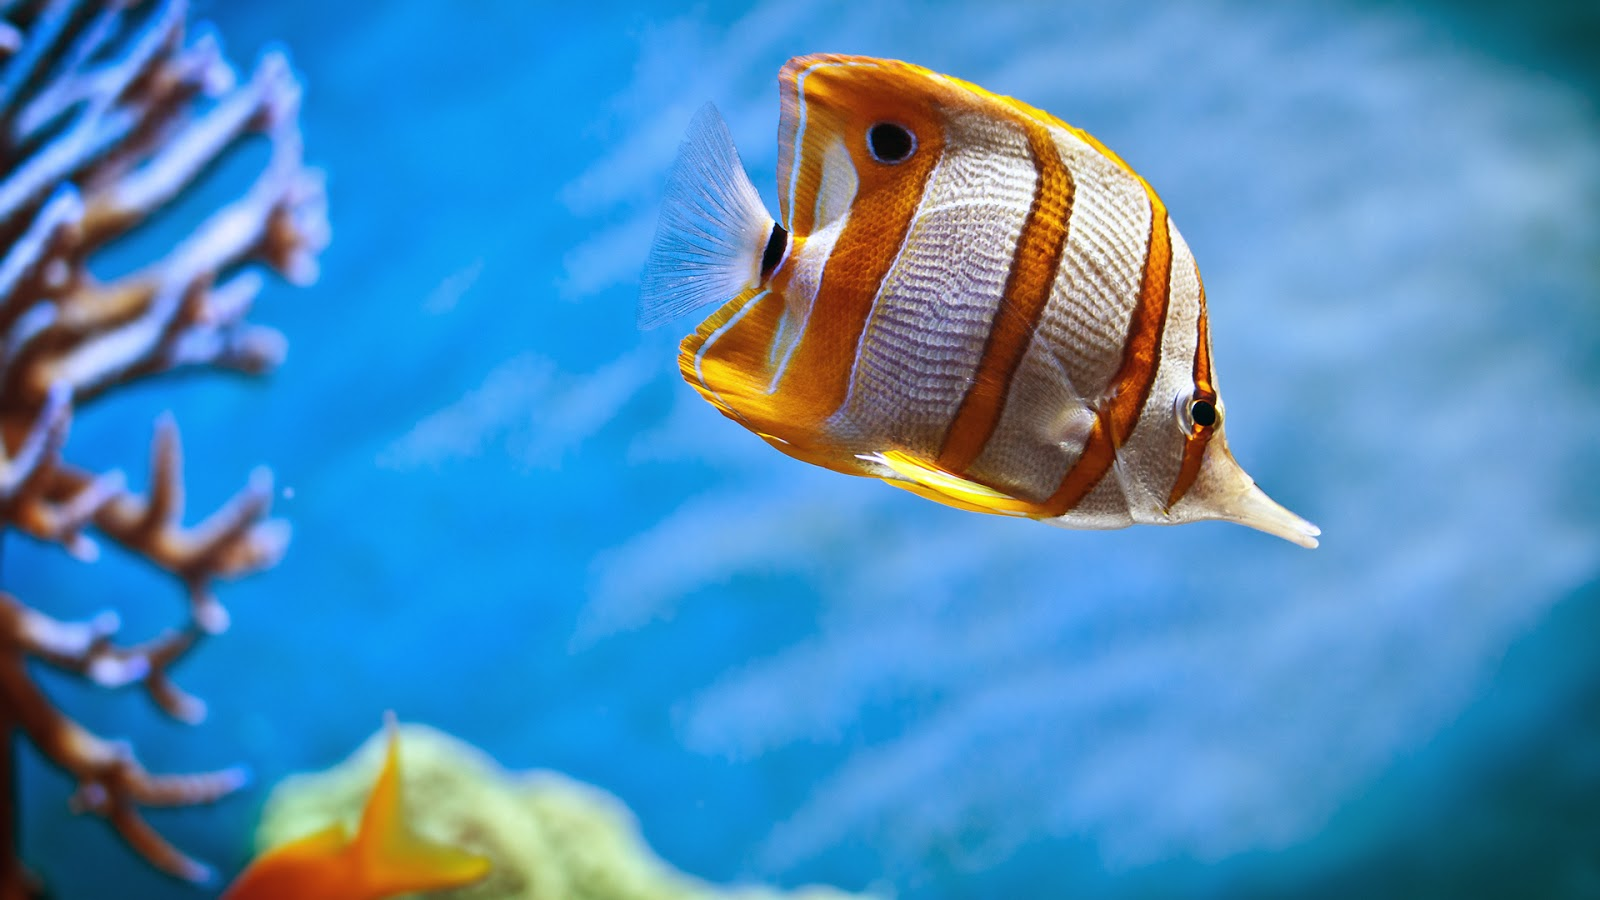 White-fish-with-stripes-most-beautiful-photo.jpg